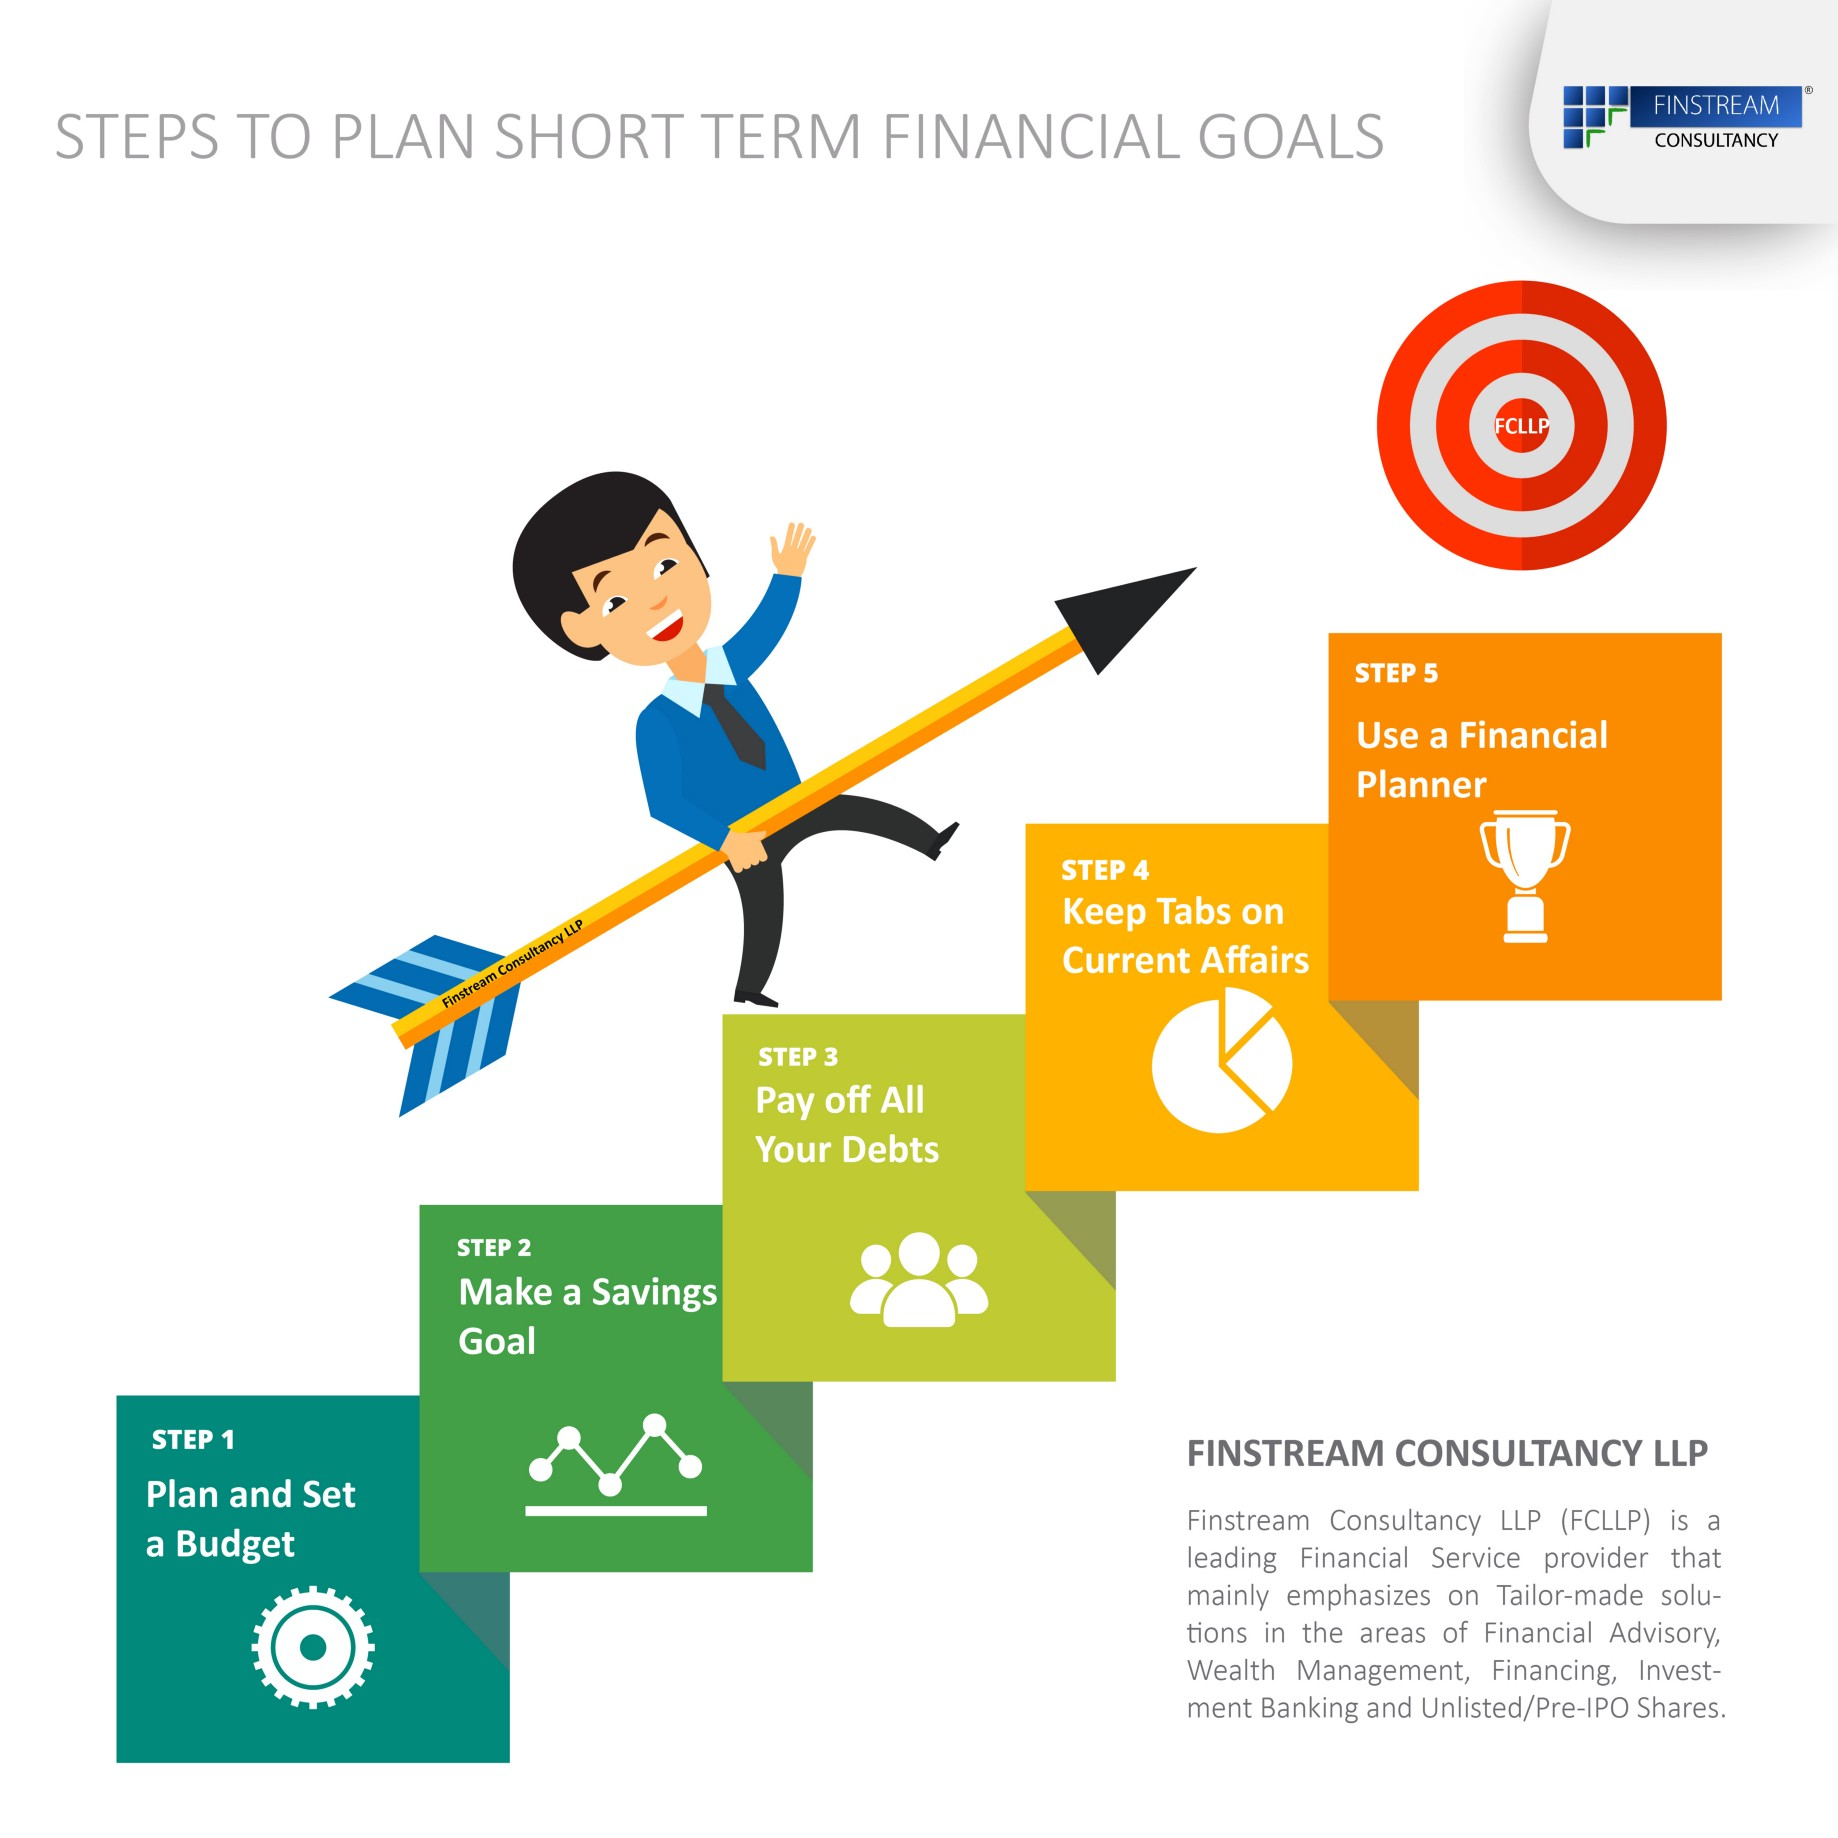 How To Plan Finances To Raise Special >> 5 Steps To Plan Short Term Financial Goals Ekvity Ventures Llp